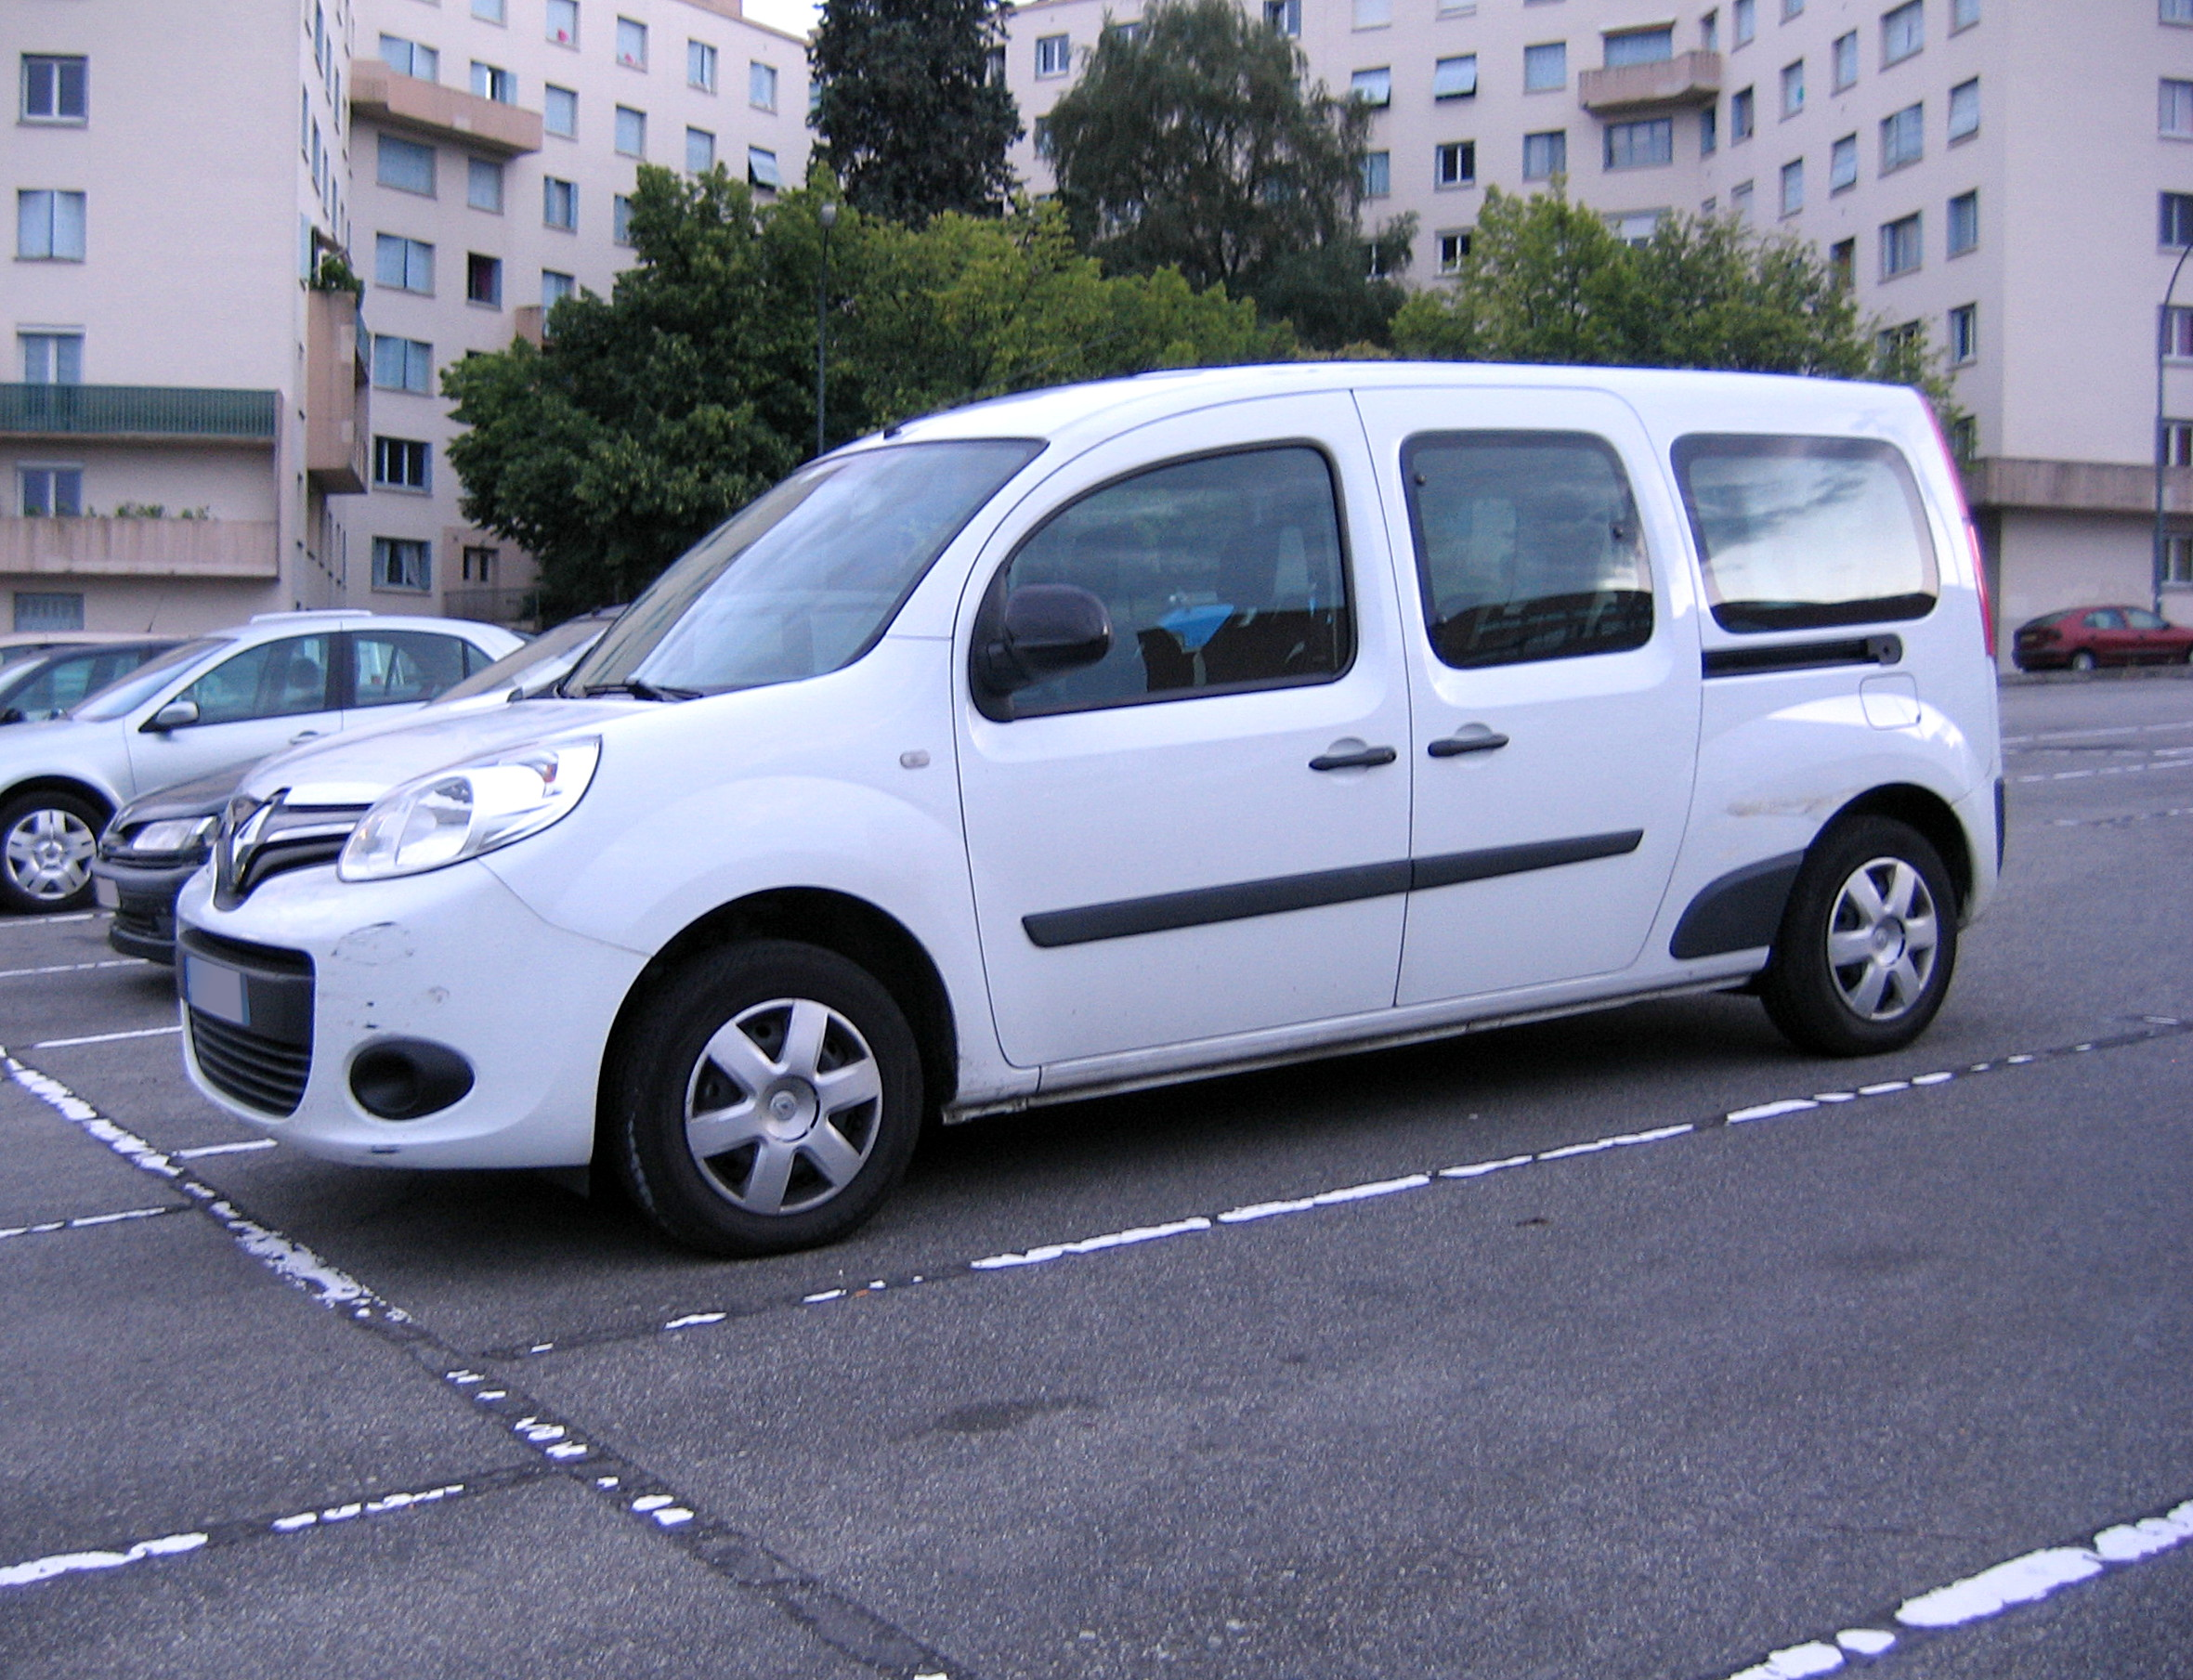 file 2013 renault kangoo maxi fl jpg wikimedia commons. Black Bedroom Furniture Sets. Home Design Ideas